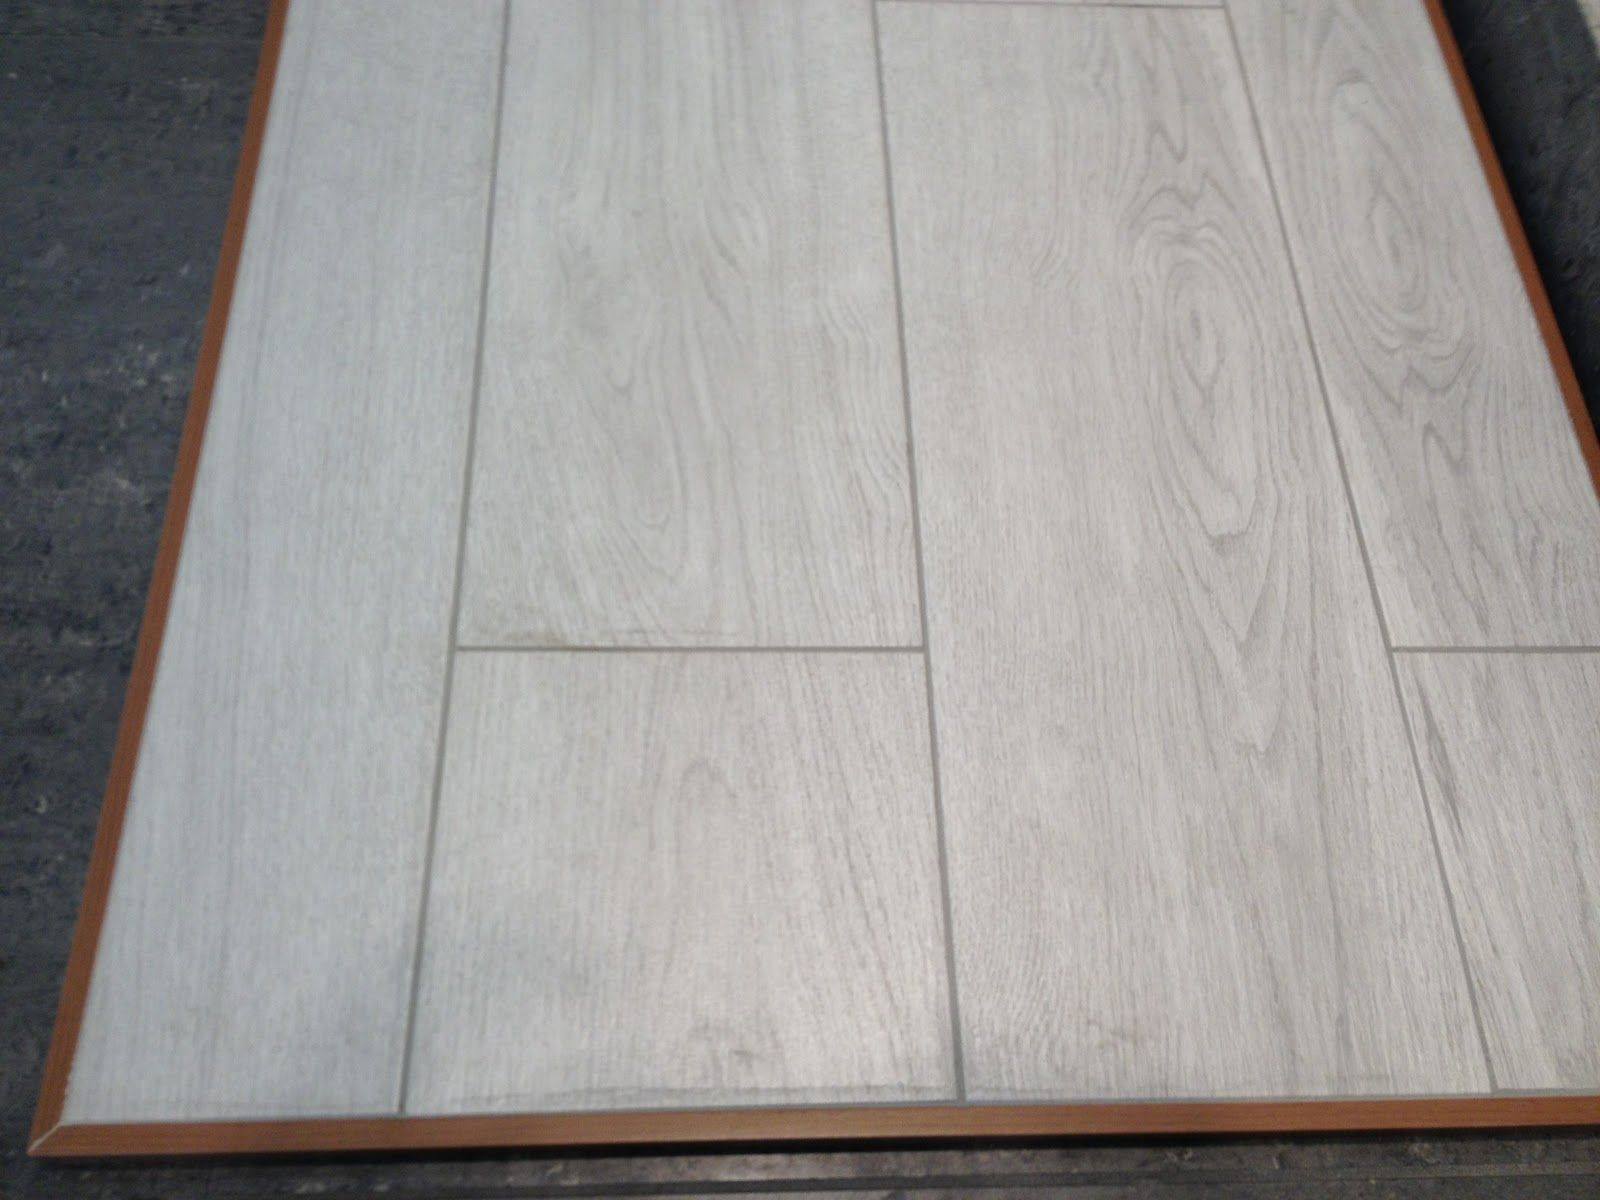 White wash wood looking tile flooring my garden diaries april decoration ideas exciting white natural wood look tile flooring for bathroom floor or oudoor room deck elegant wood look tile inspiration pictures dailygadgetfo Choice Image